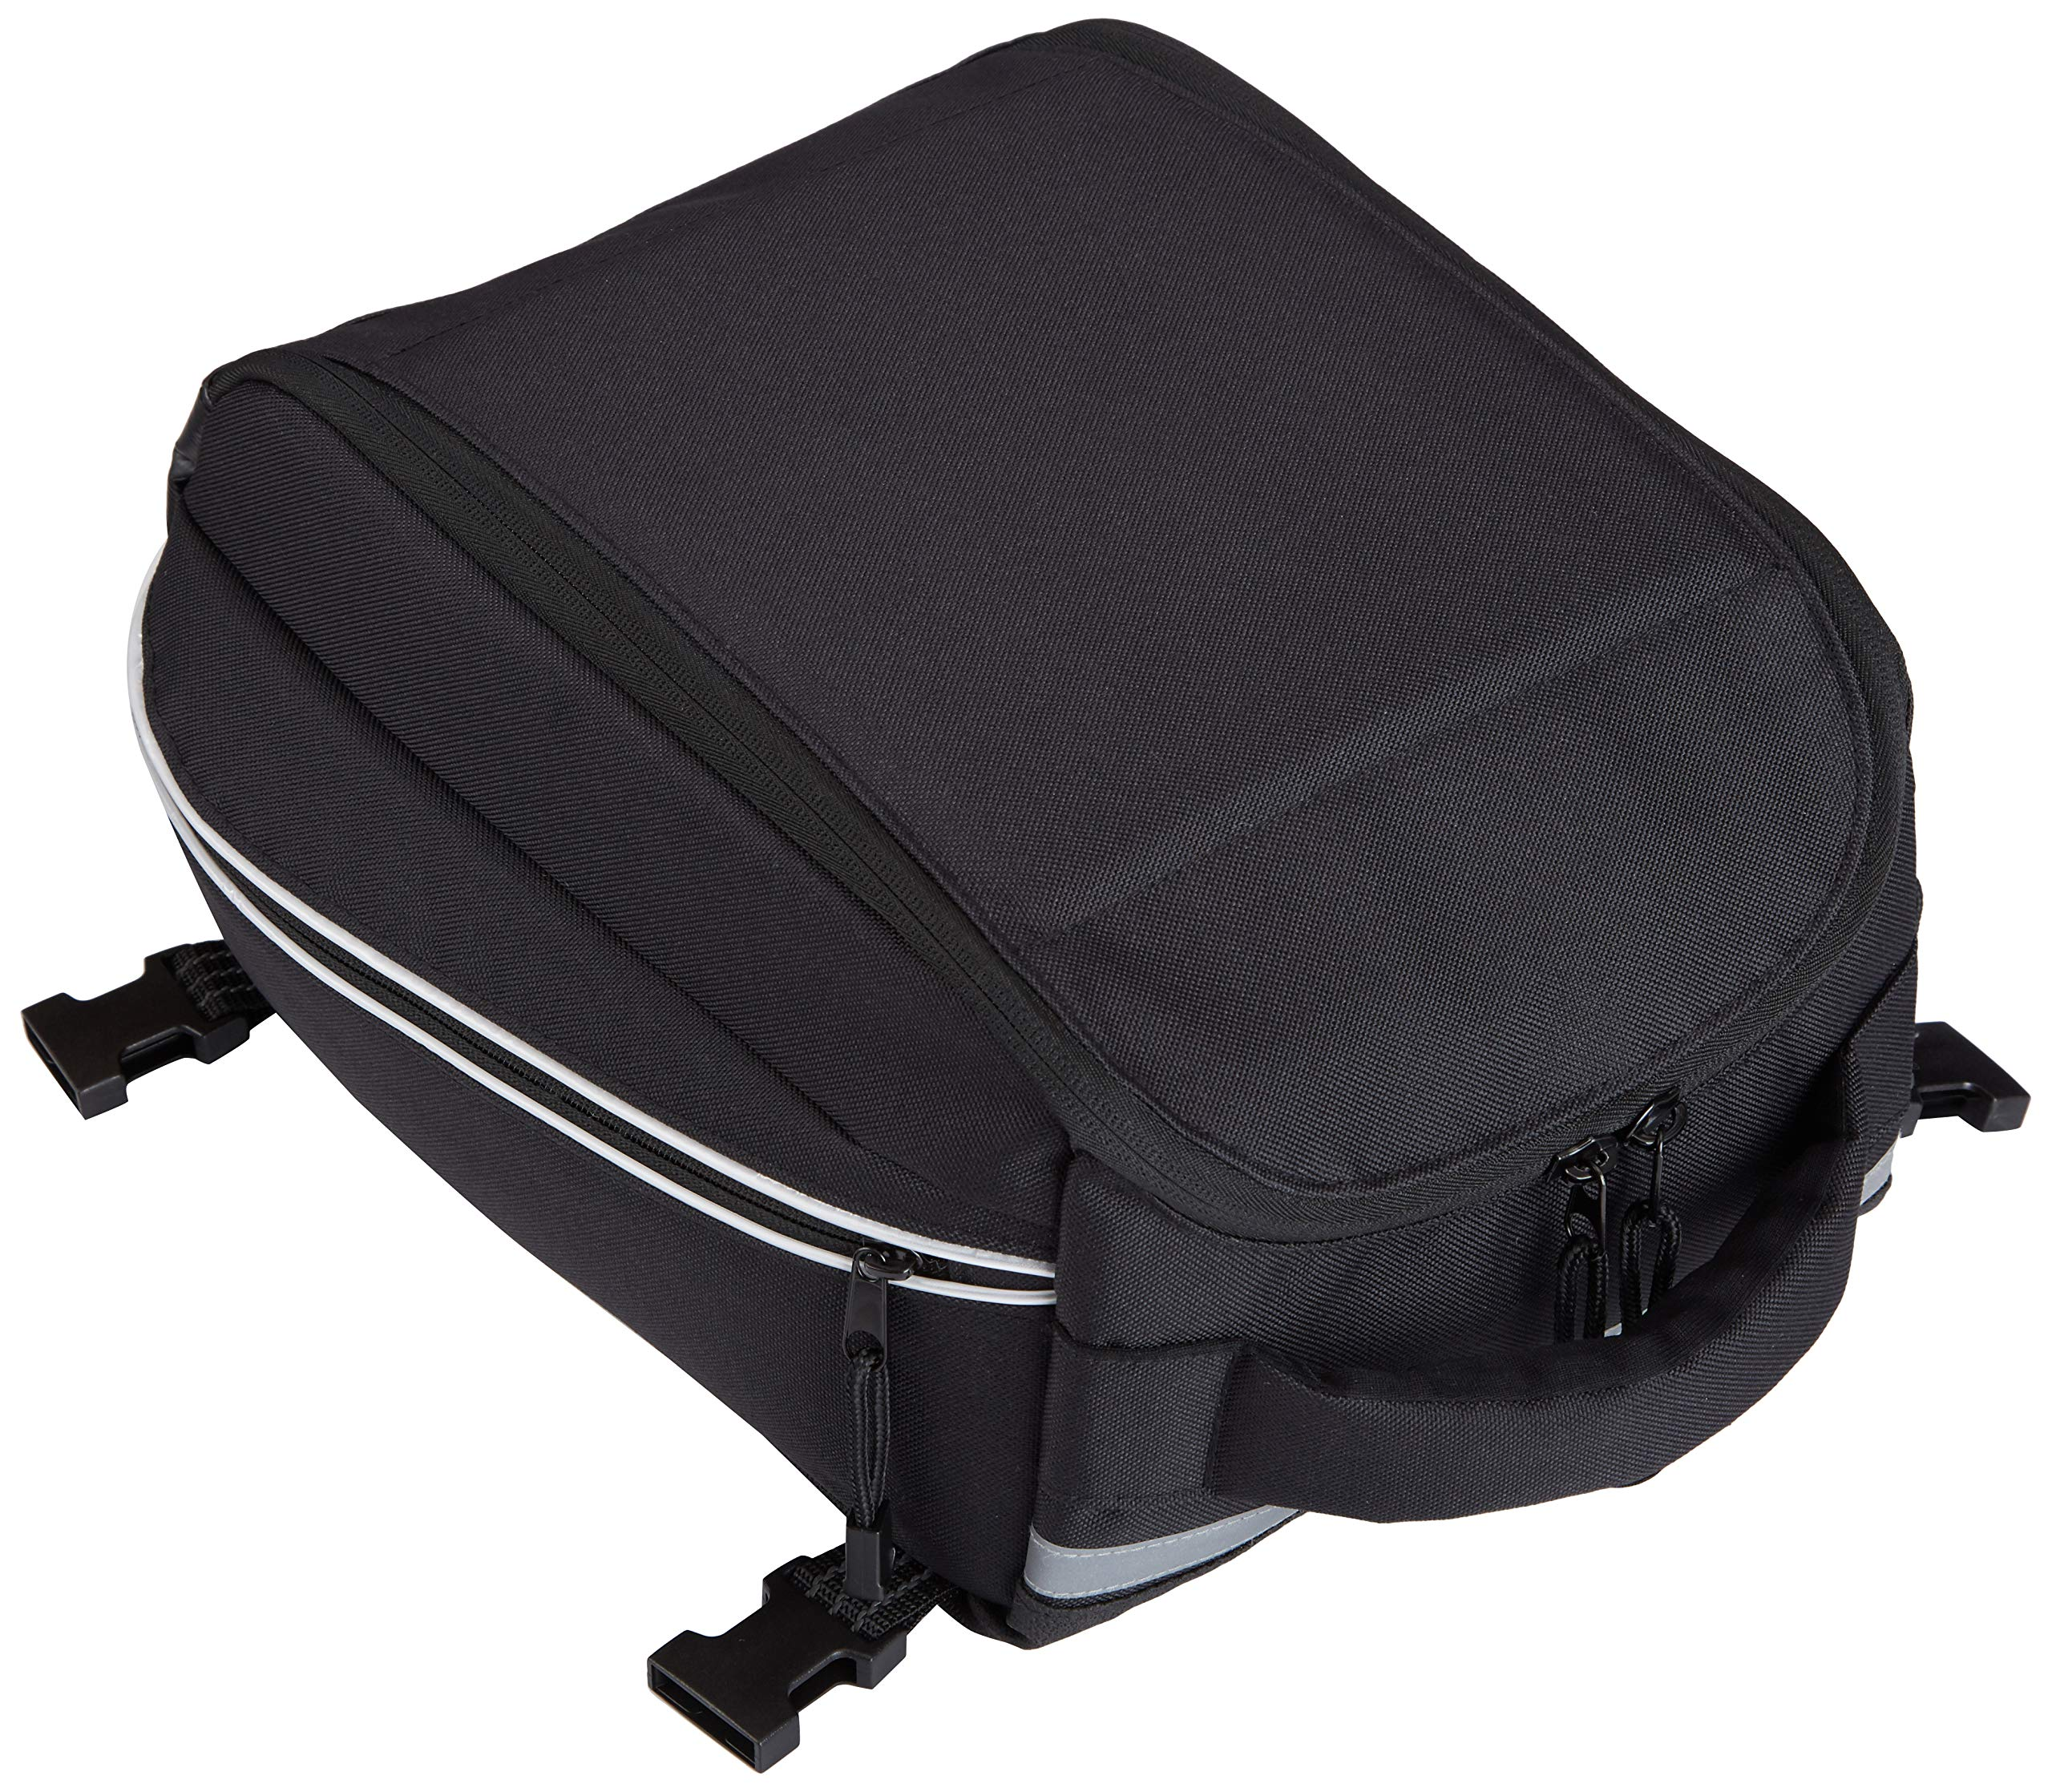 AmazonBasics Motorcycle Tail Bag by AmazonBasics